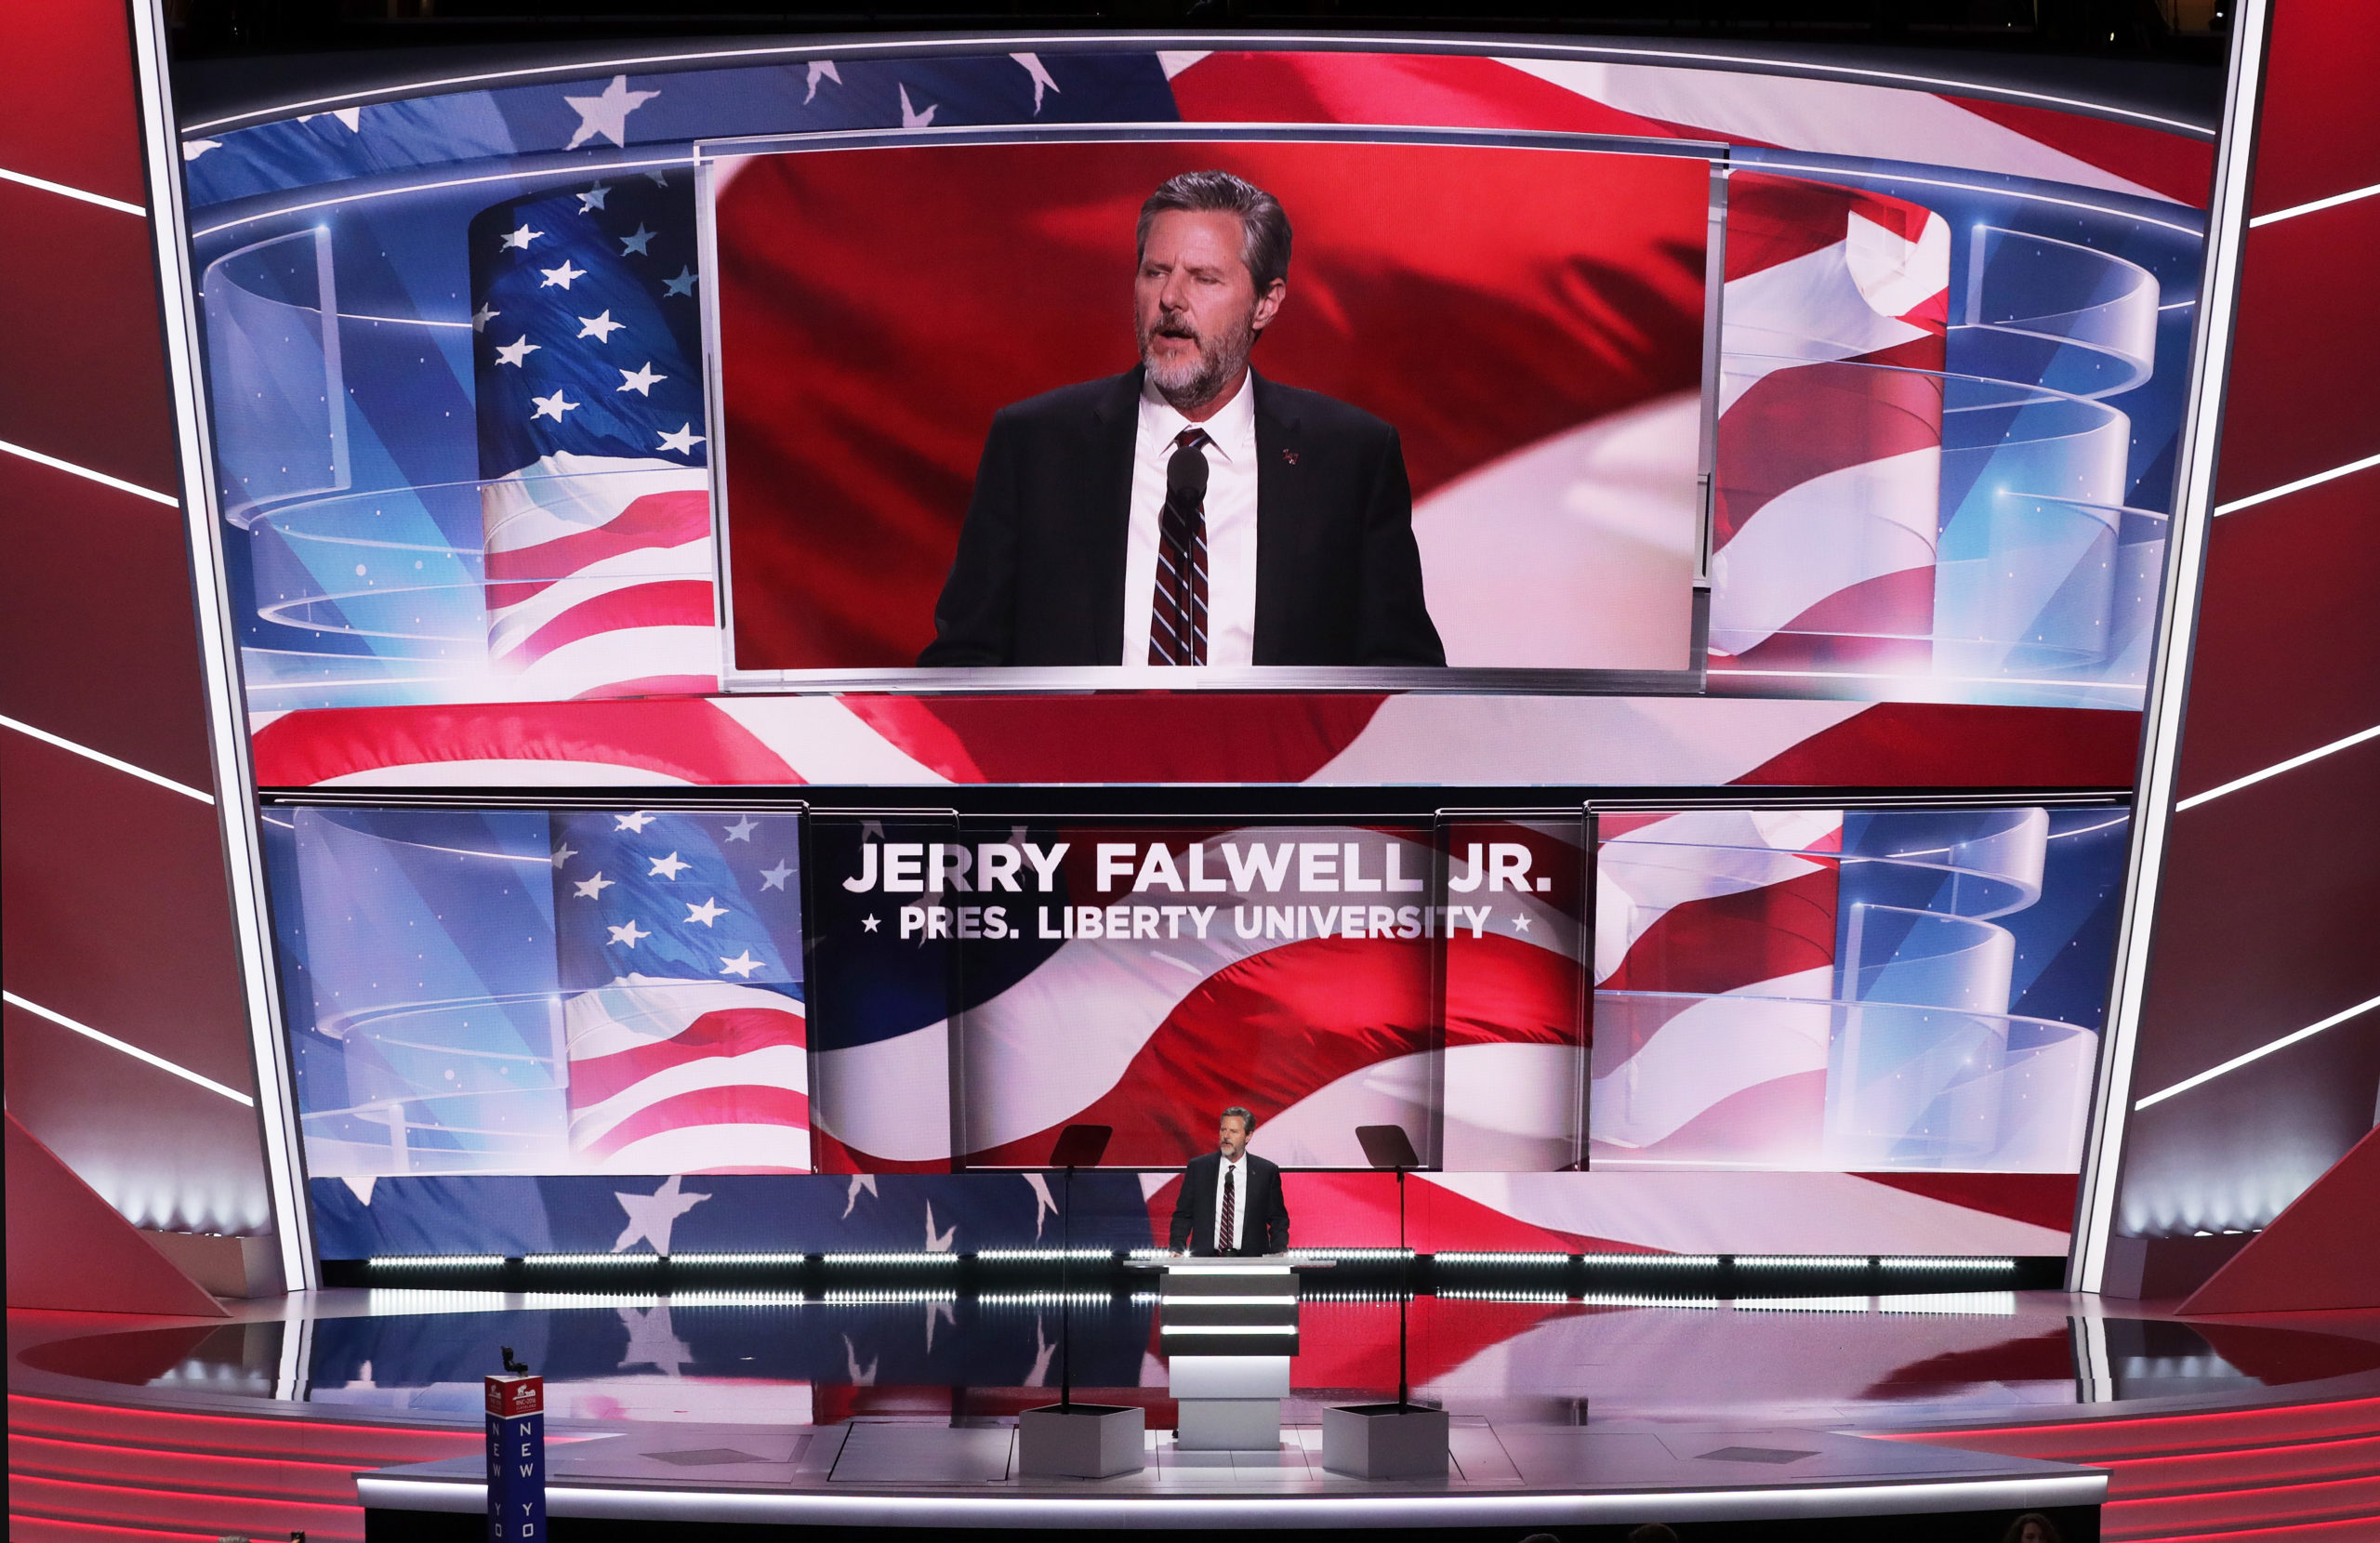 President of Liberty University, Jerry Falwell Jr, delivers a speech during the evening session on the fourth day of the Republican National Convention in 2016